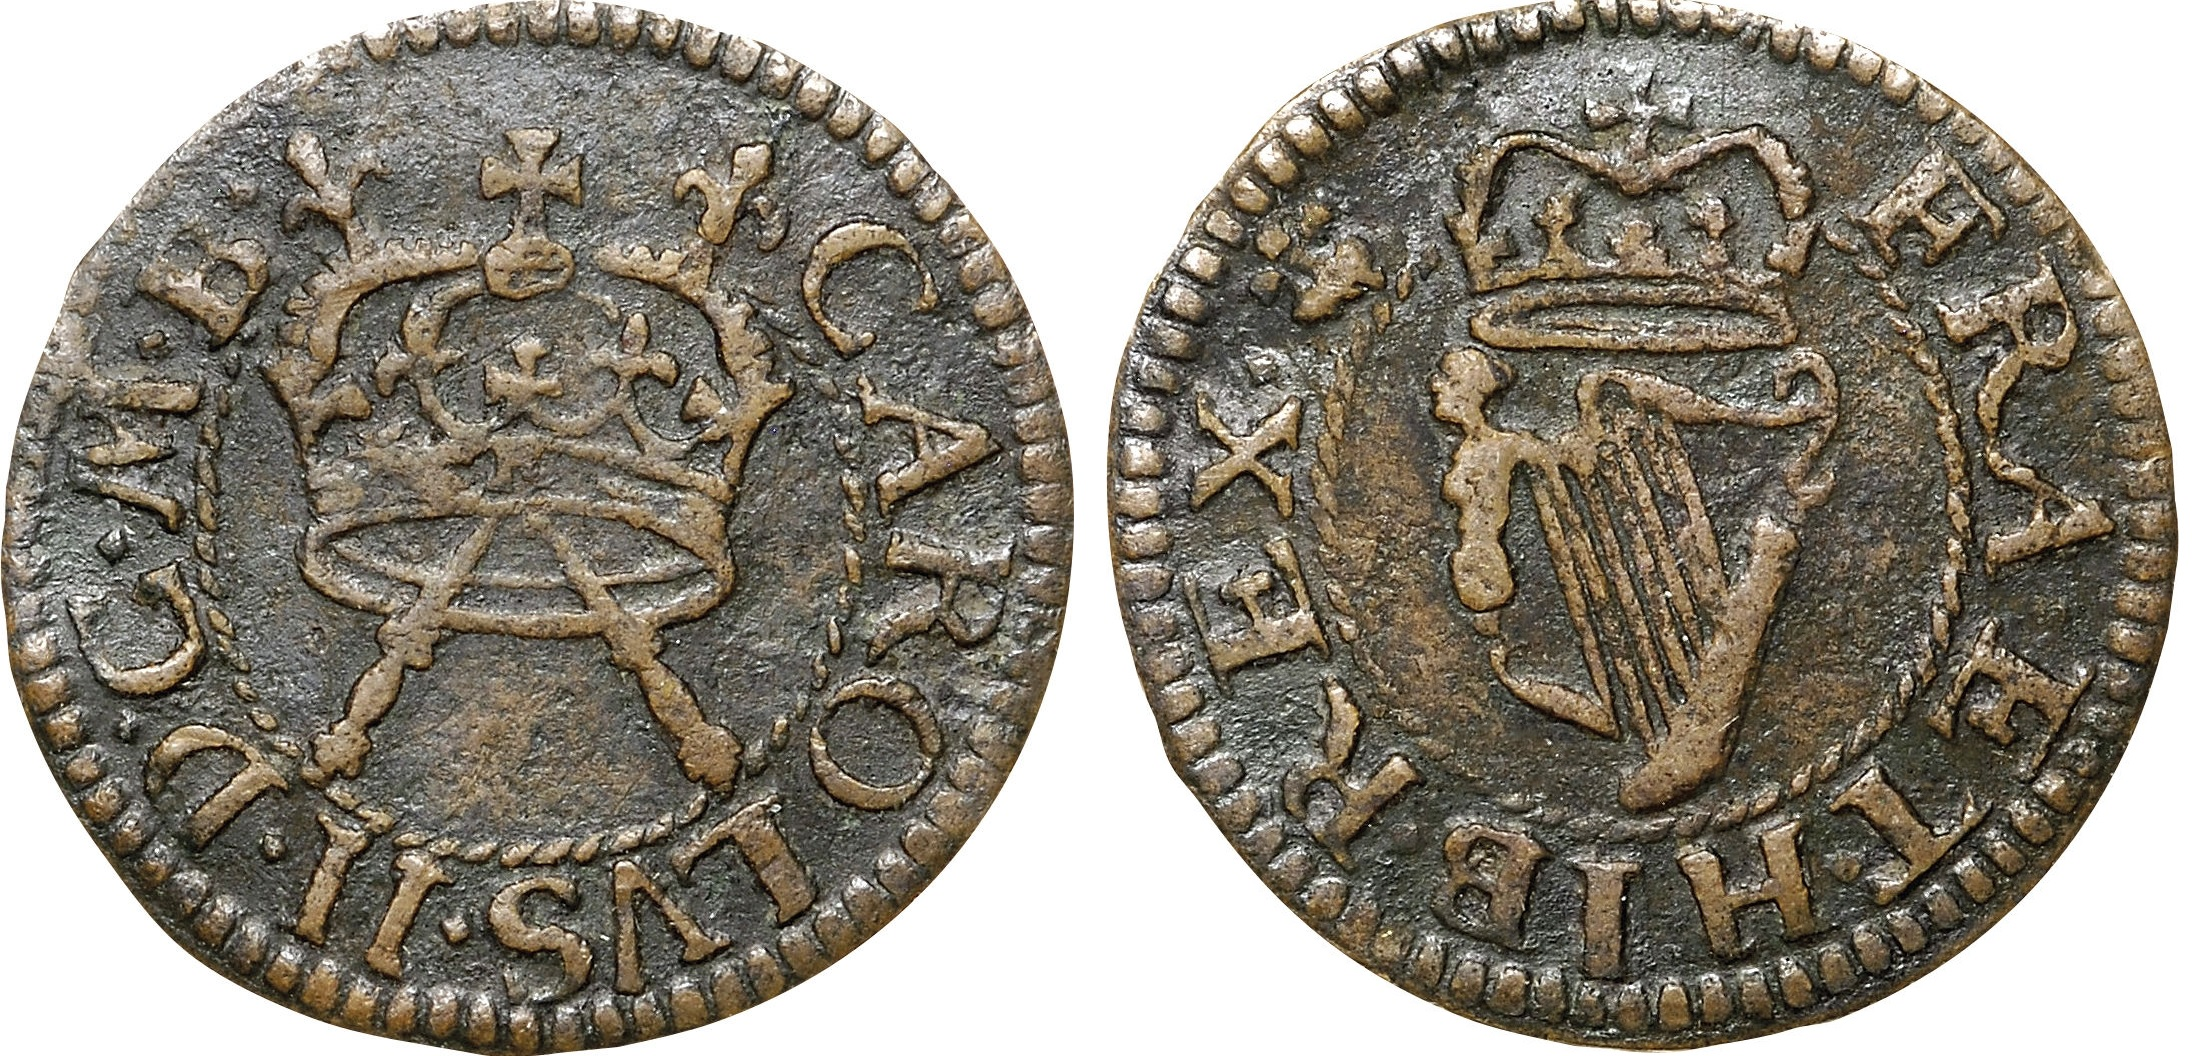 O'Brien Coin Guide: Armstrong's 'Patent' Irish Farthings